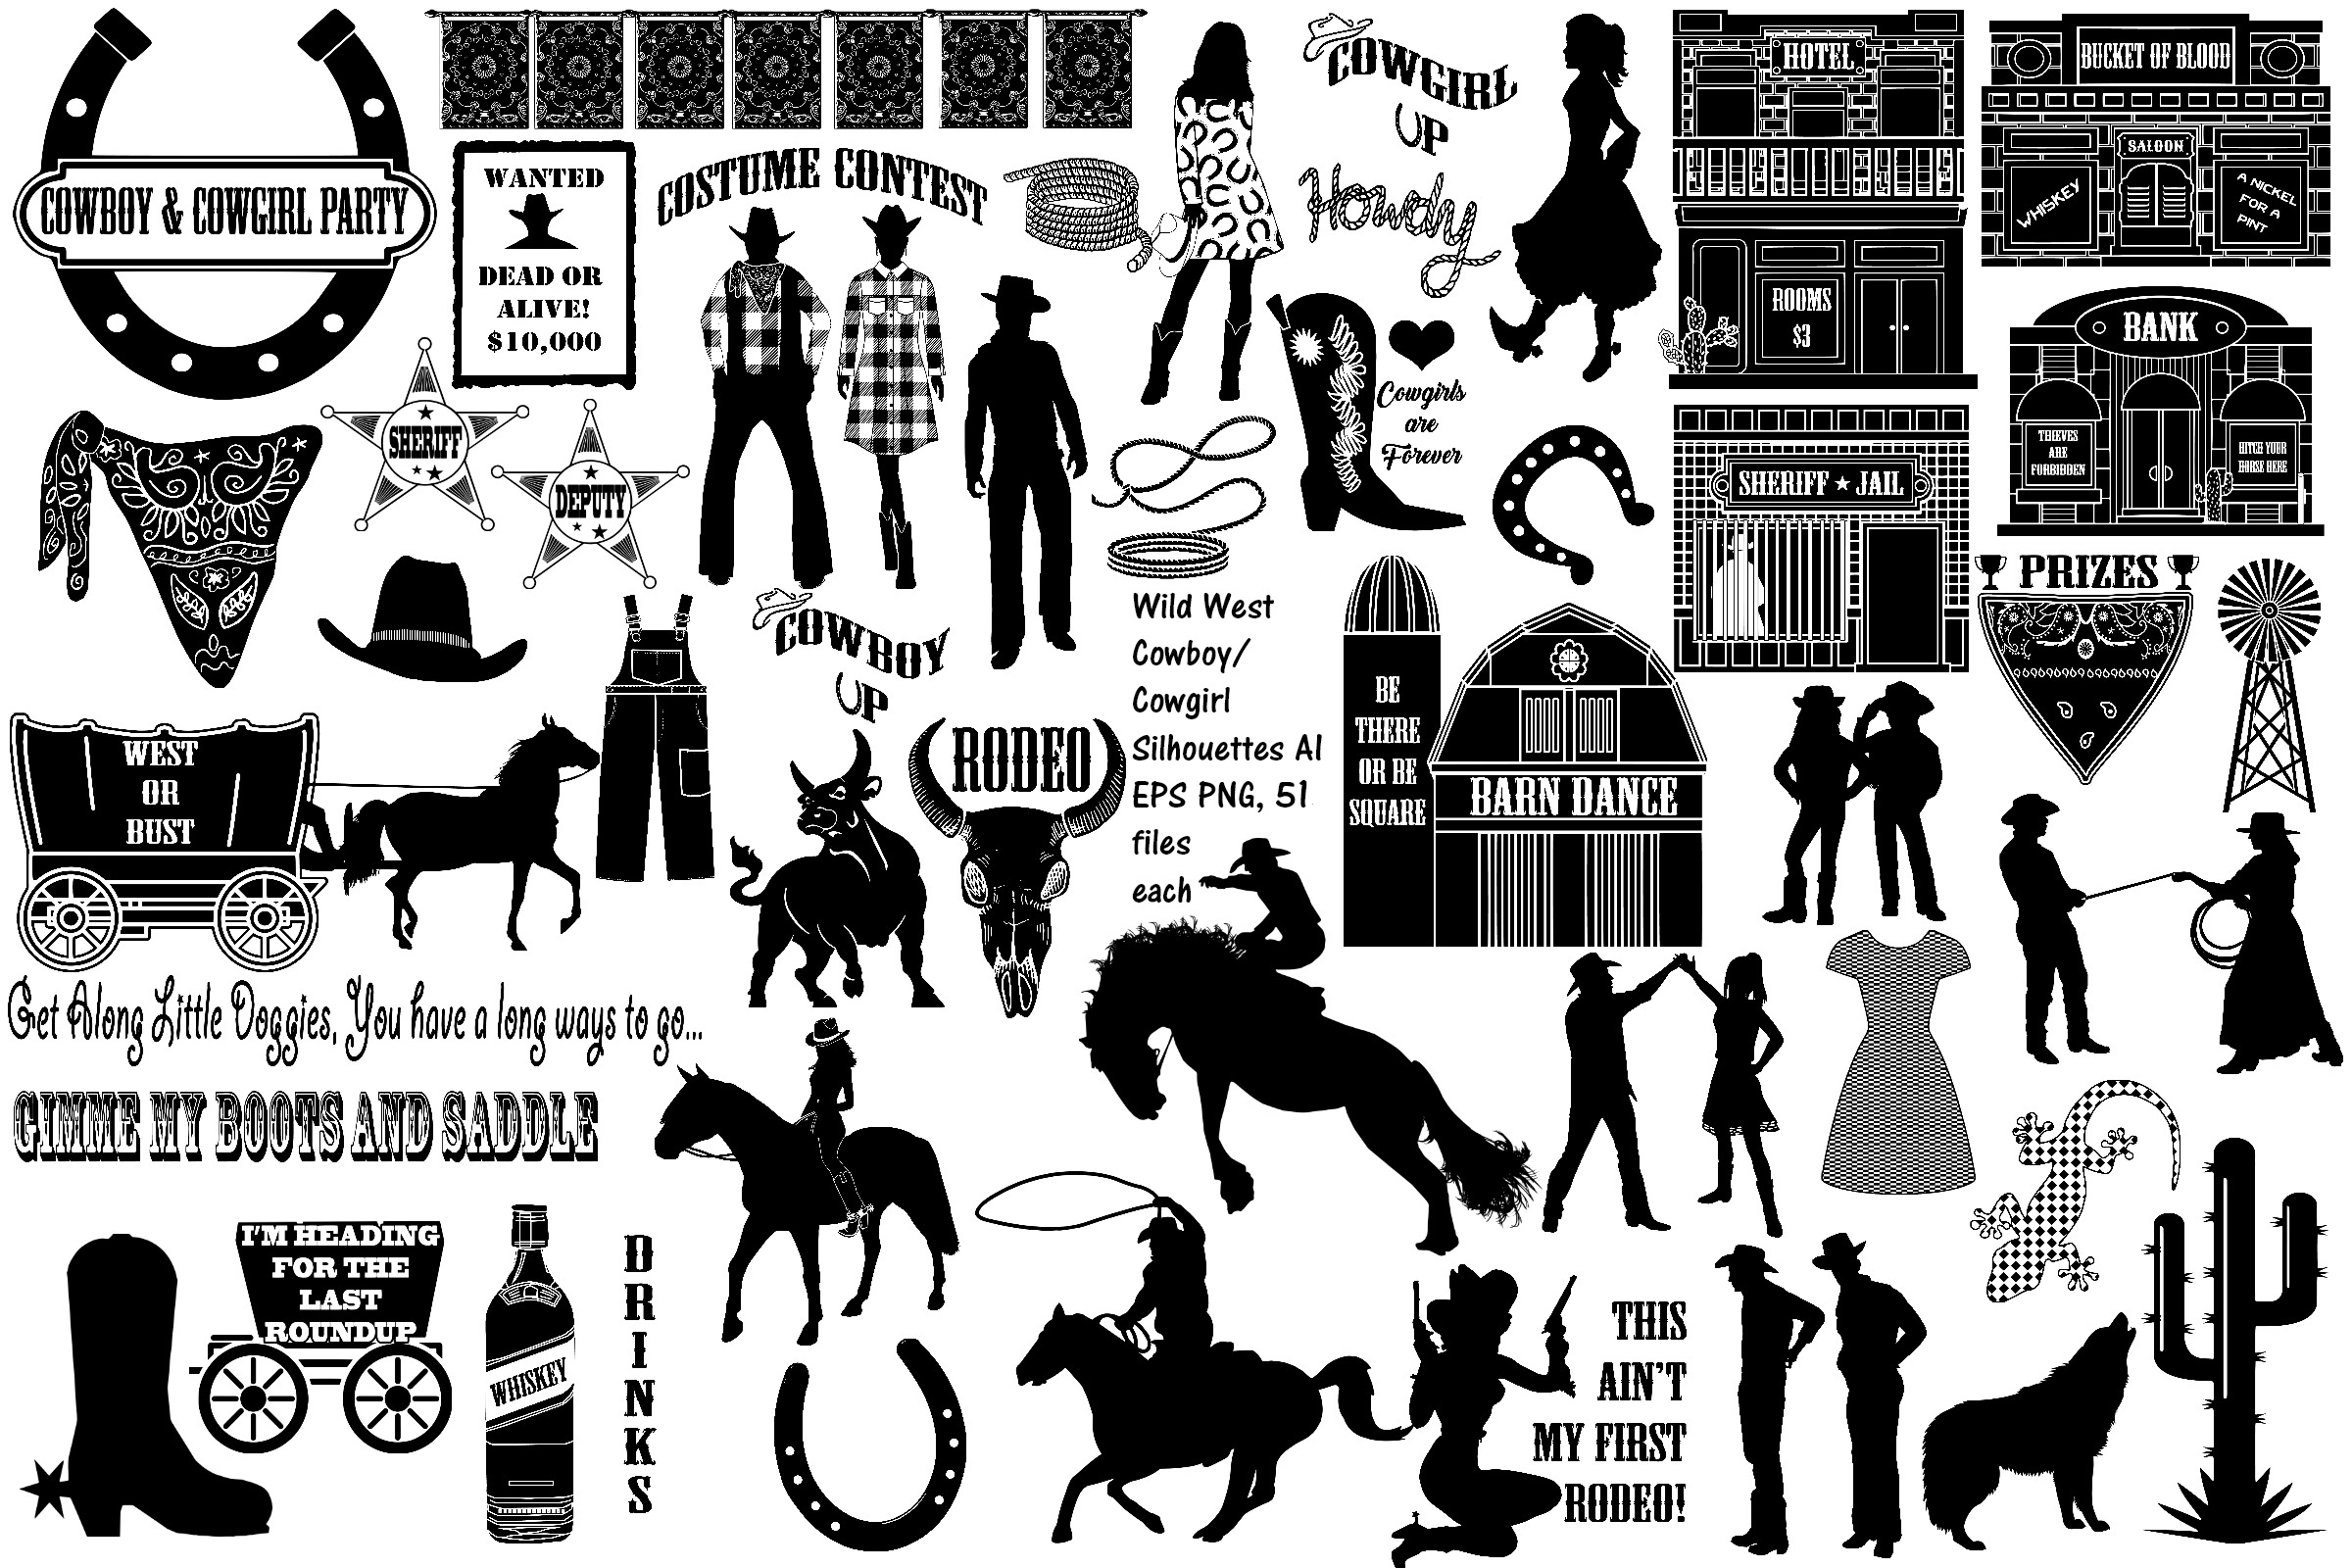 Wild West Cowboy Silhouettes AI EPS Vector & PNG.